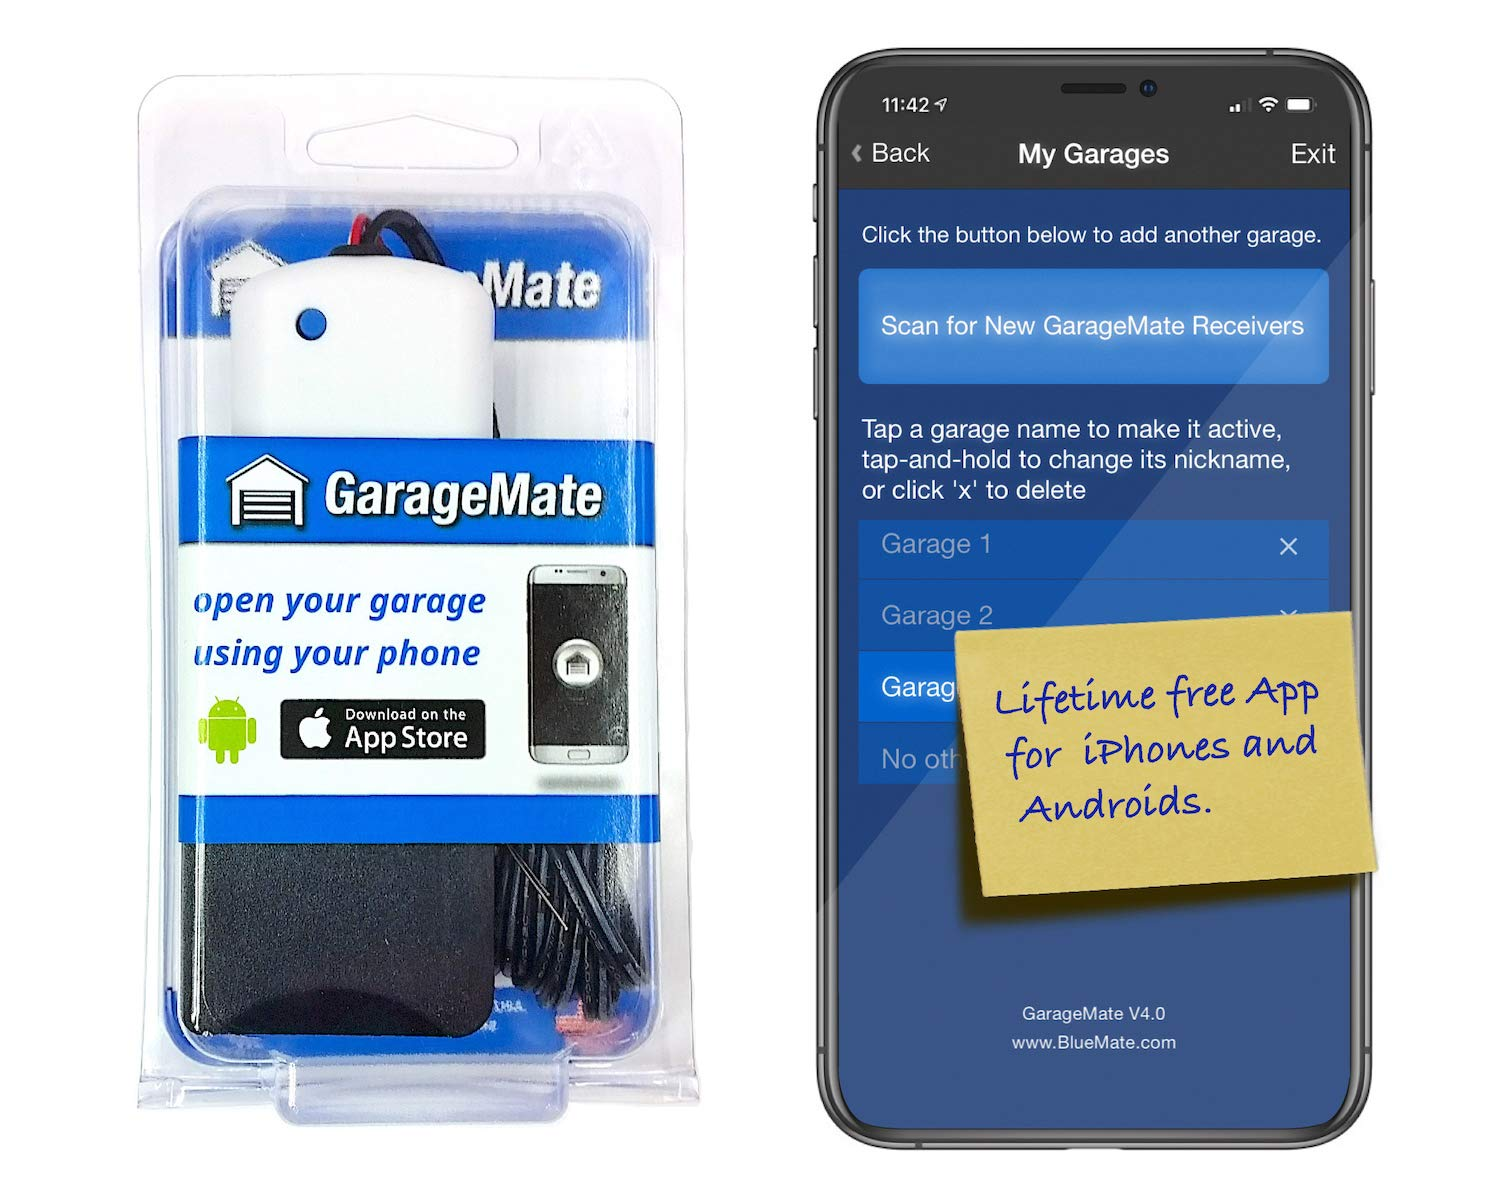 GarageMate: Open your garage with your iPhone or Android